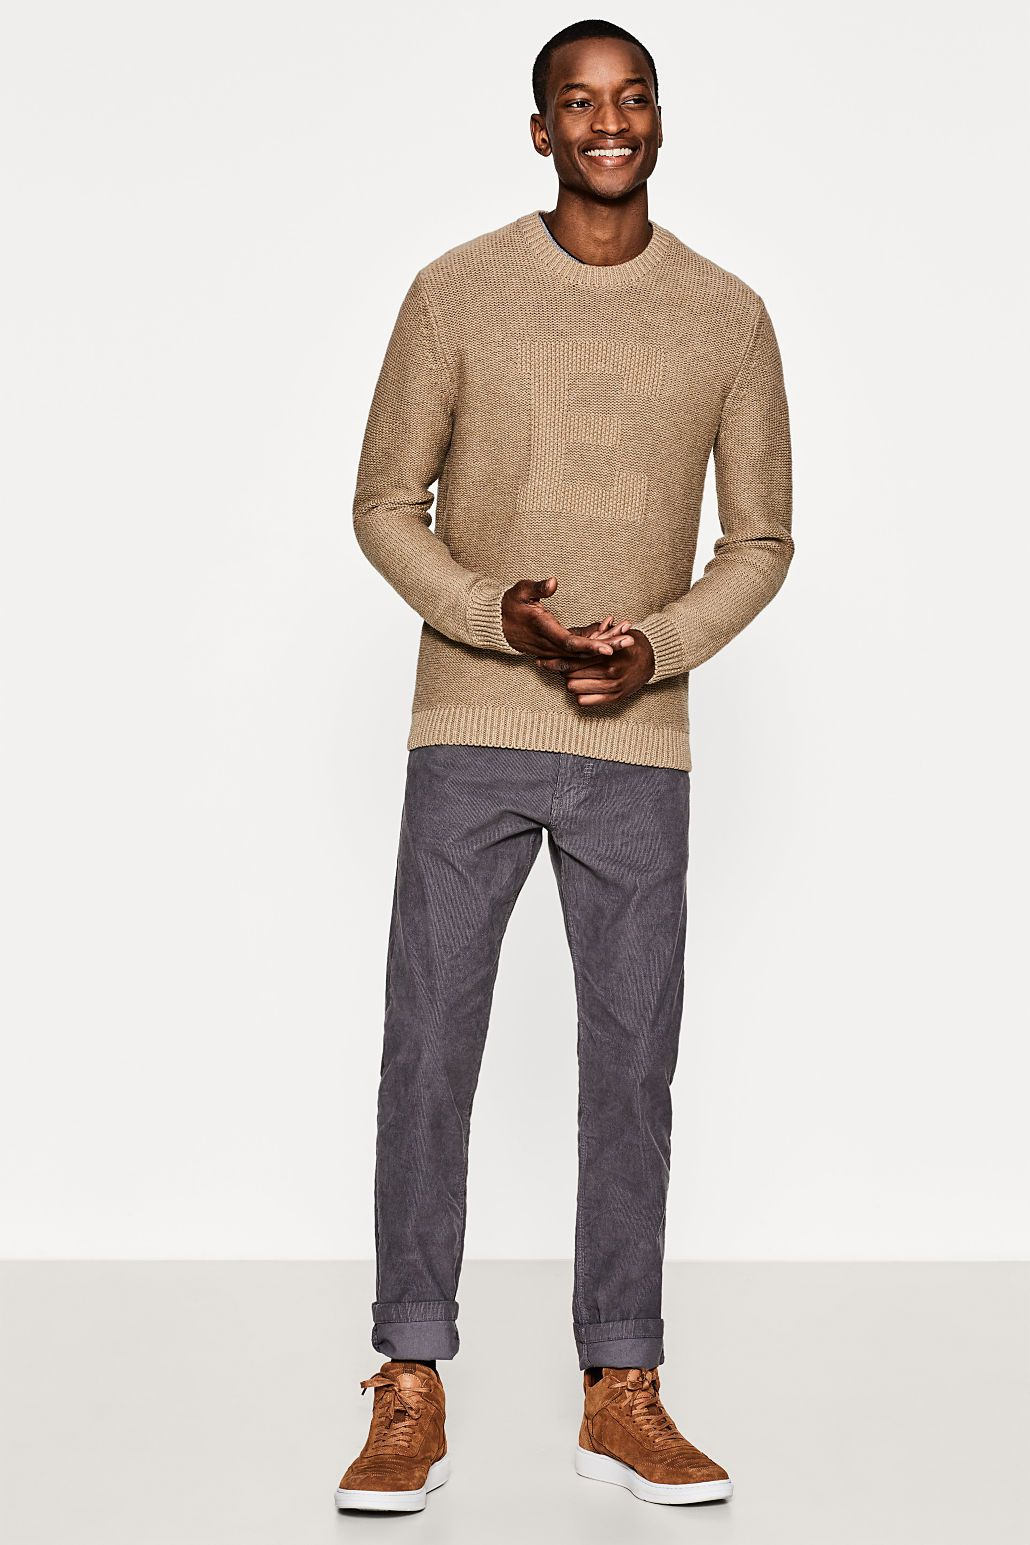 318dff1188d476 Oliver Kumbi for Esprit #knitwear | Mac & Neal Suited and Booted in ...